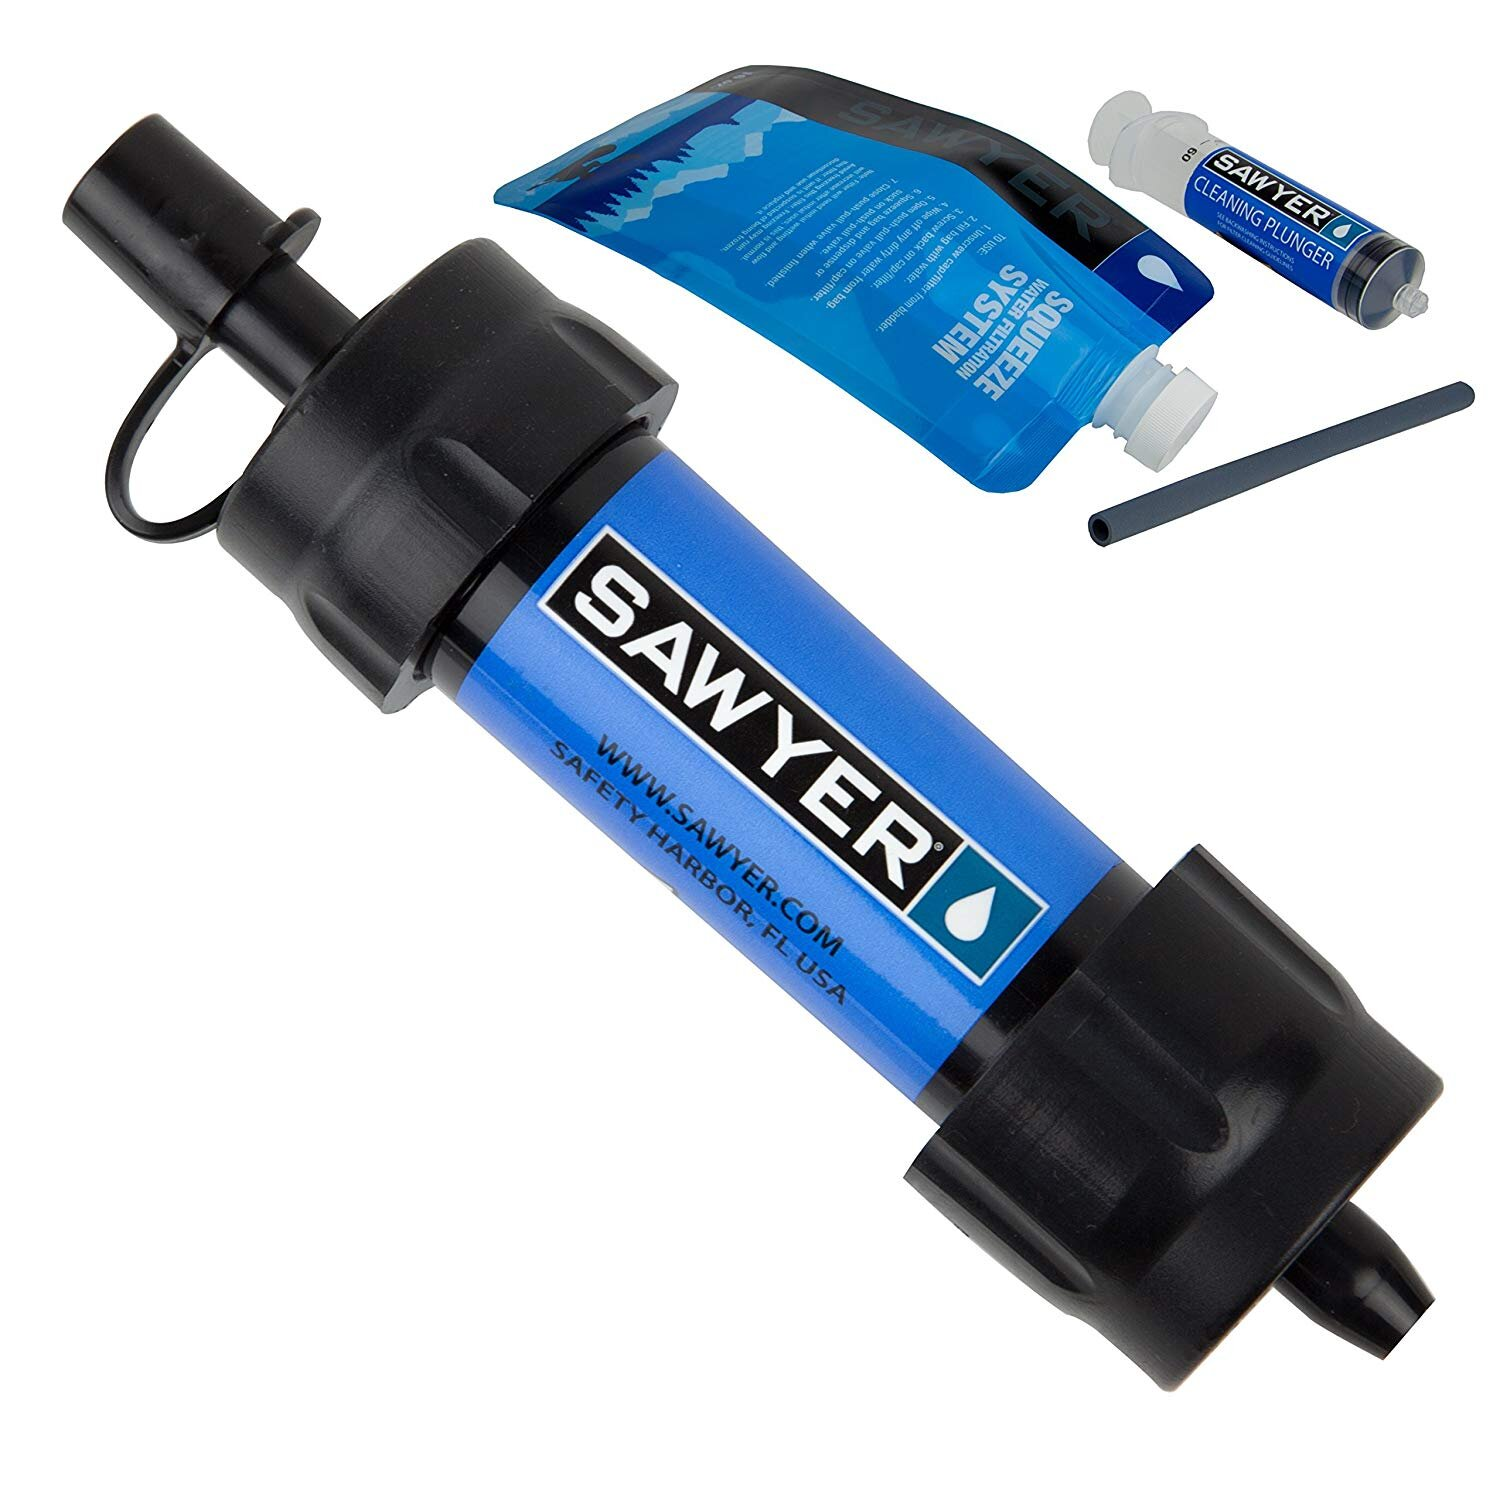 Sawyer-mini-water-filter-best-gifts-for-hikers.jpg